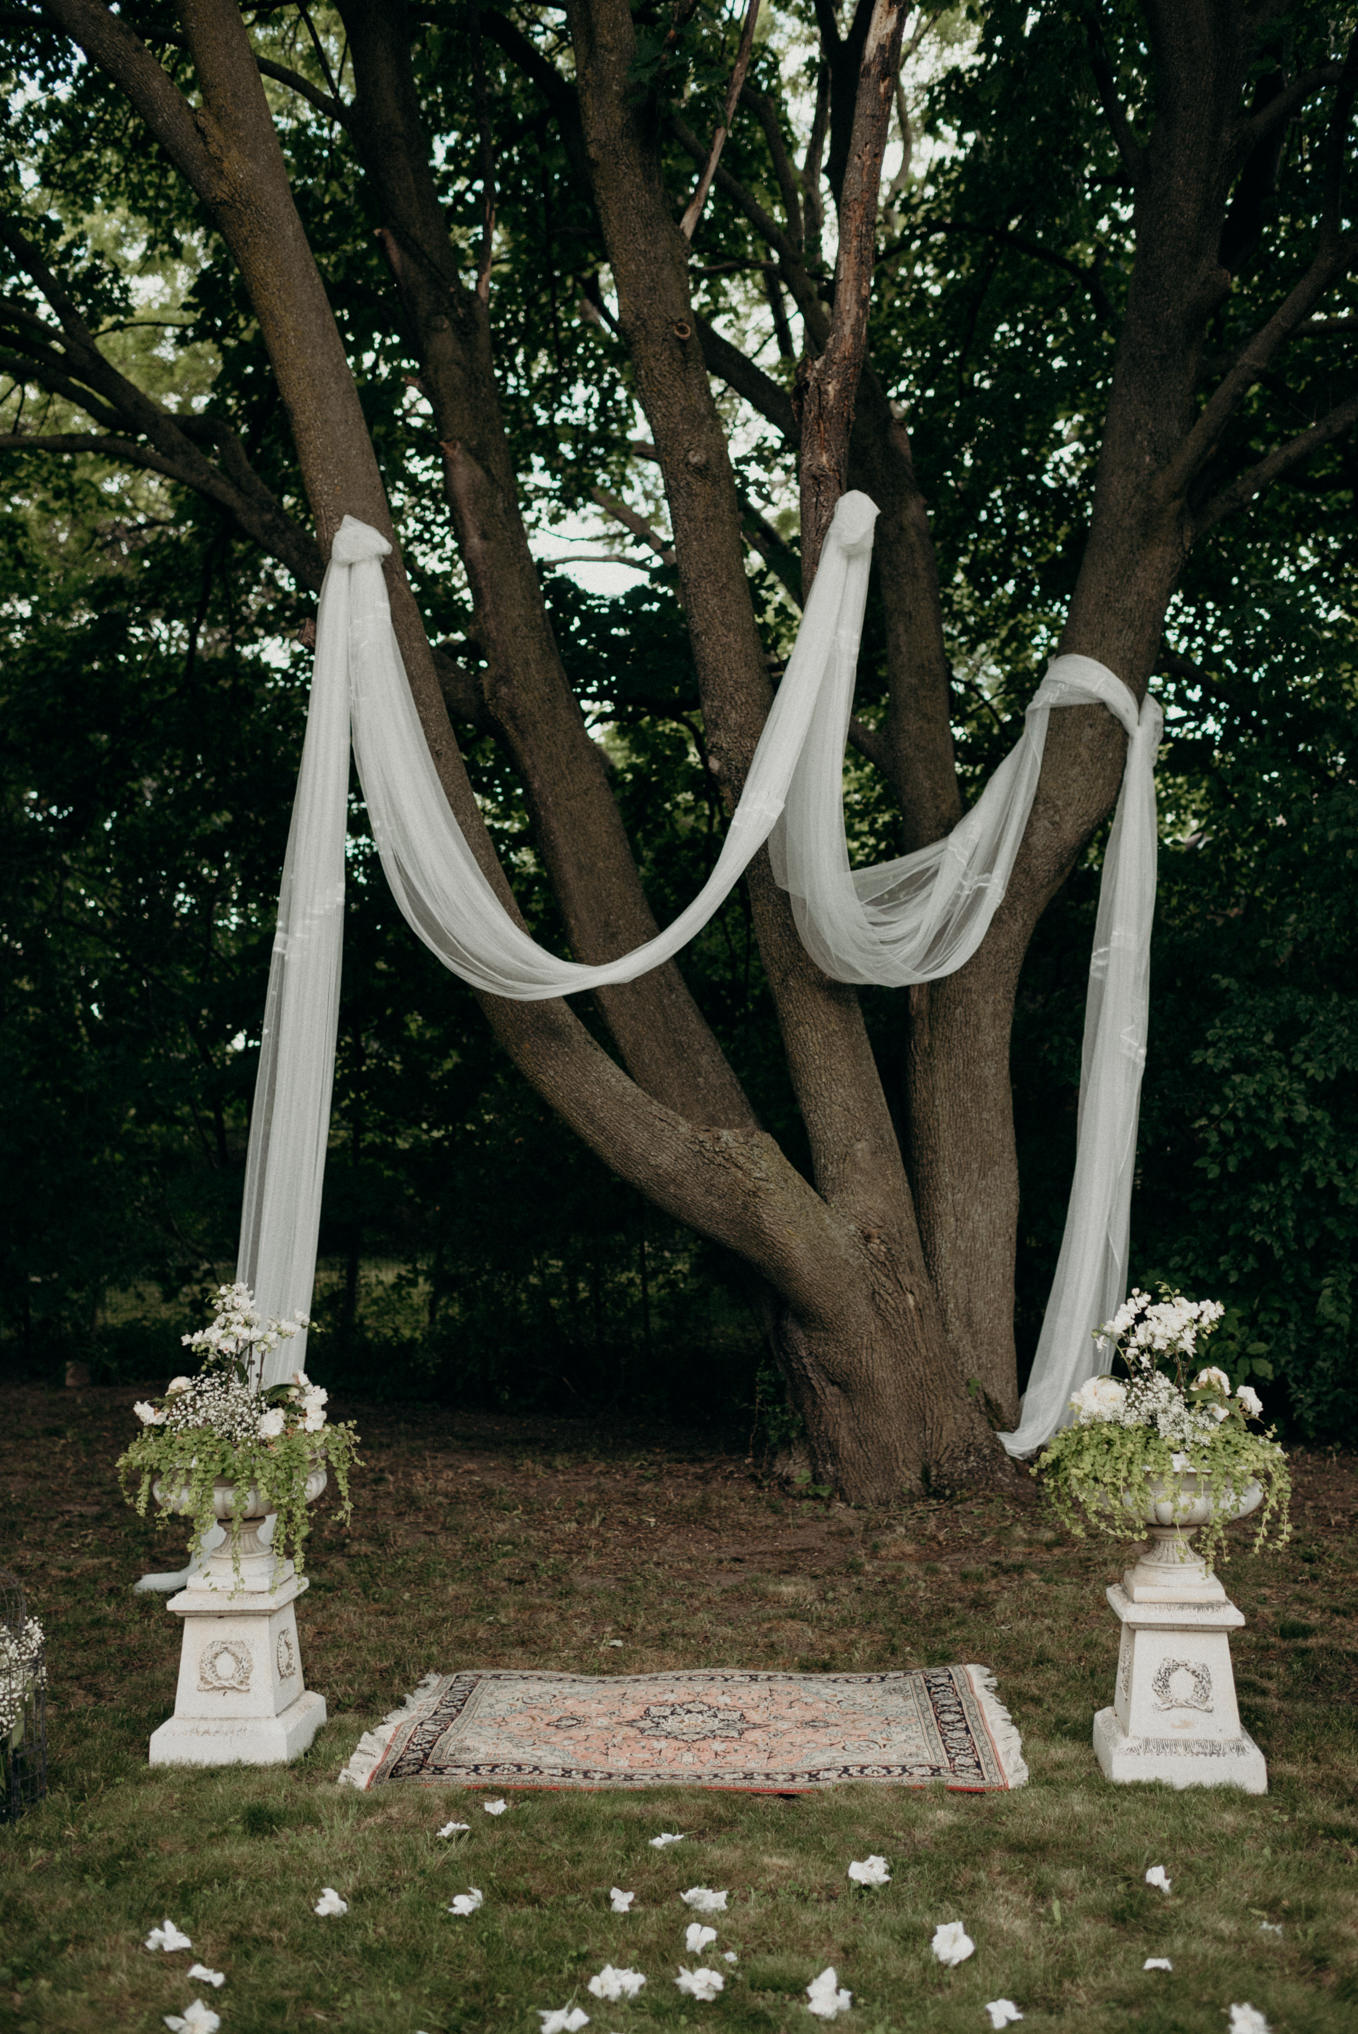 Backyard wedding ceremony setup